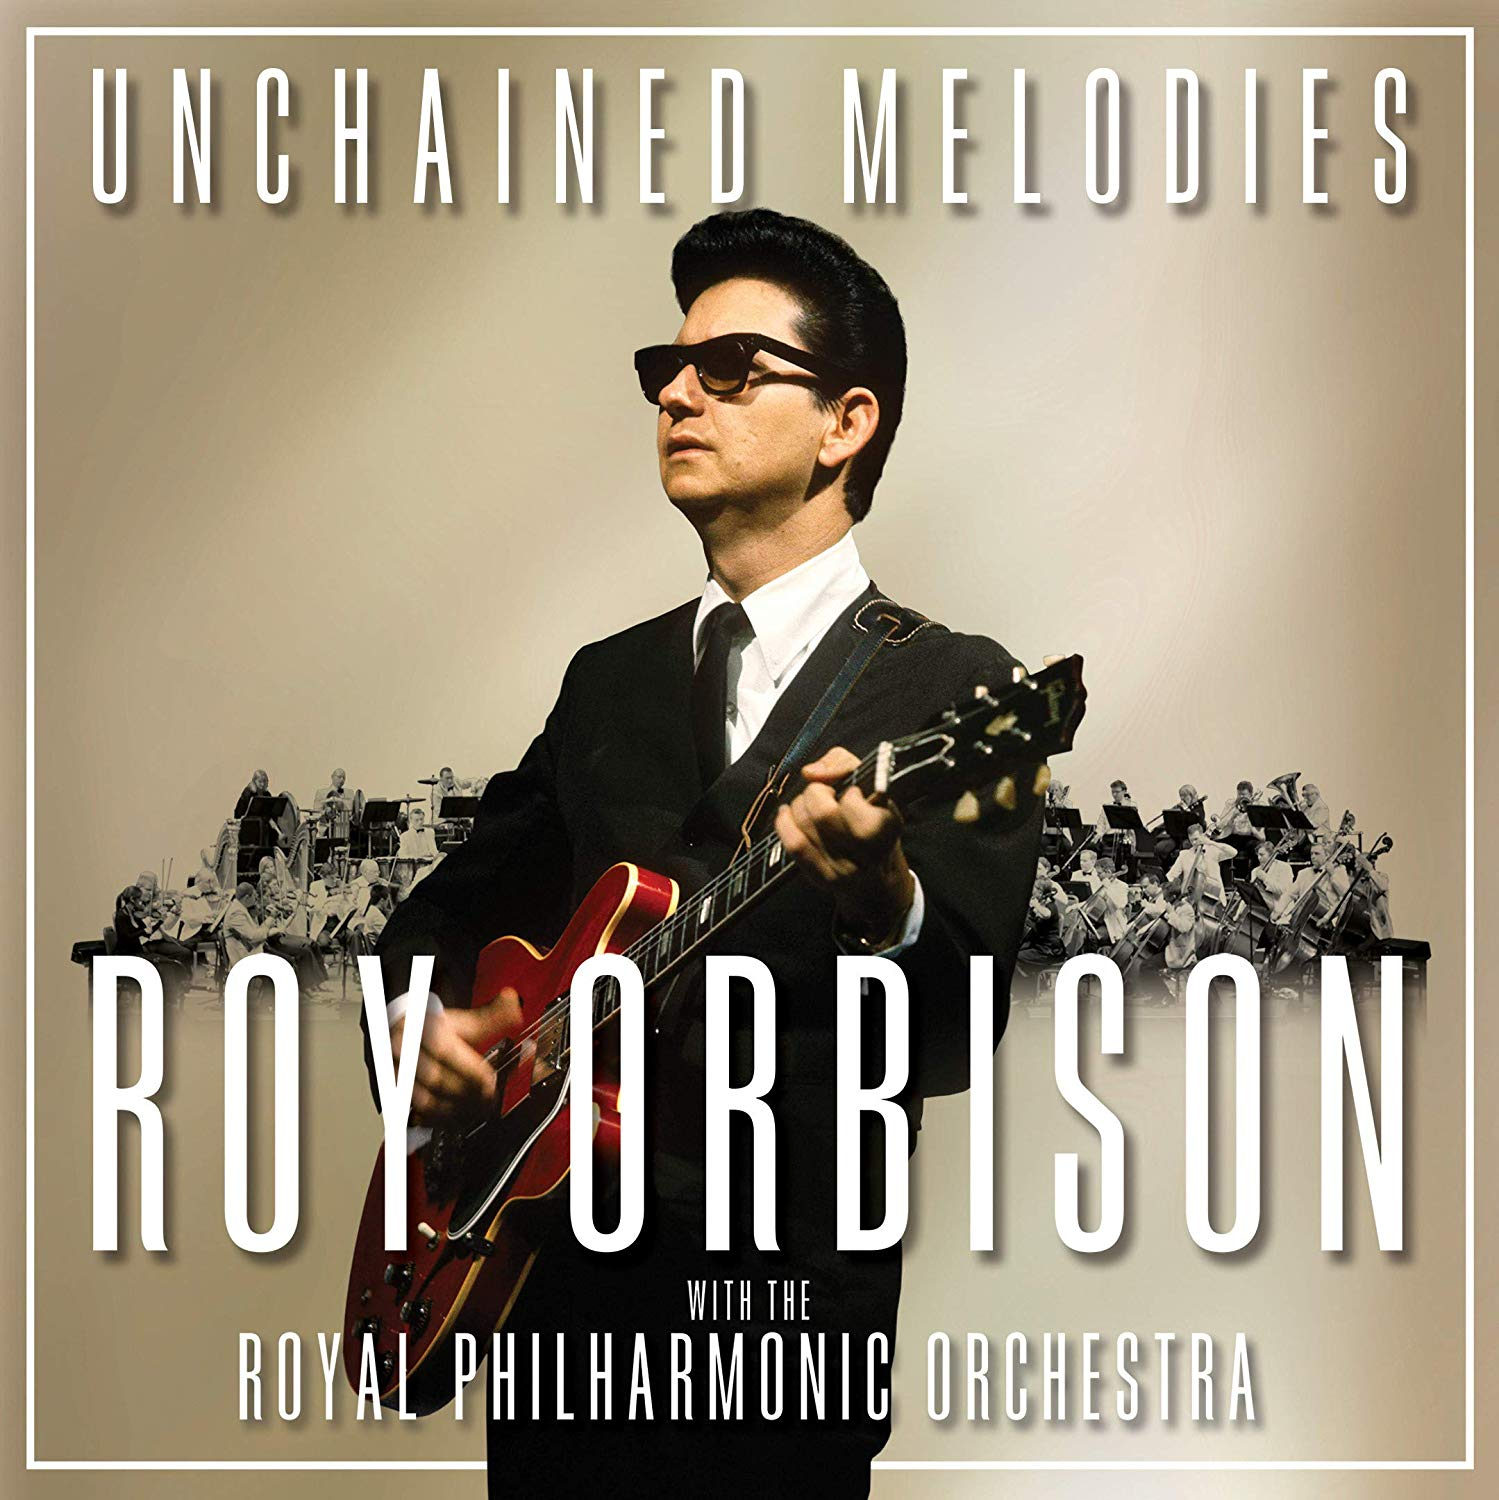 Unchained Melodies: Roy Orbison & The Royal Philharmonic Orchestra - Roy Orbison & The Royal Philharmonic Orchestra